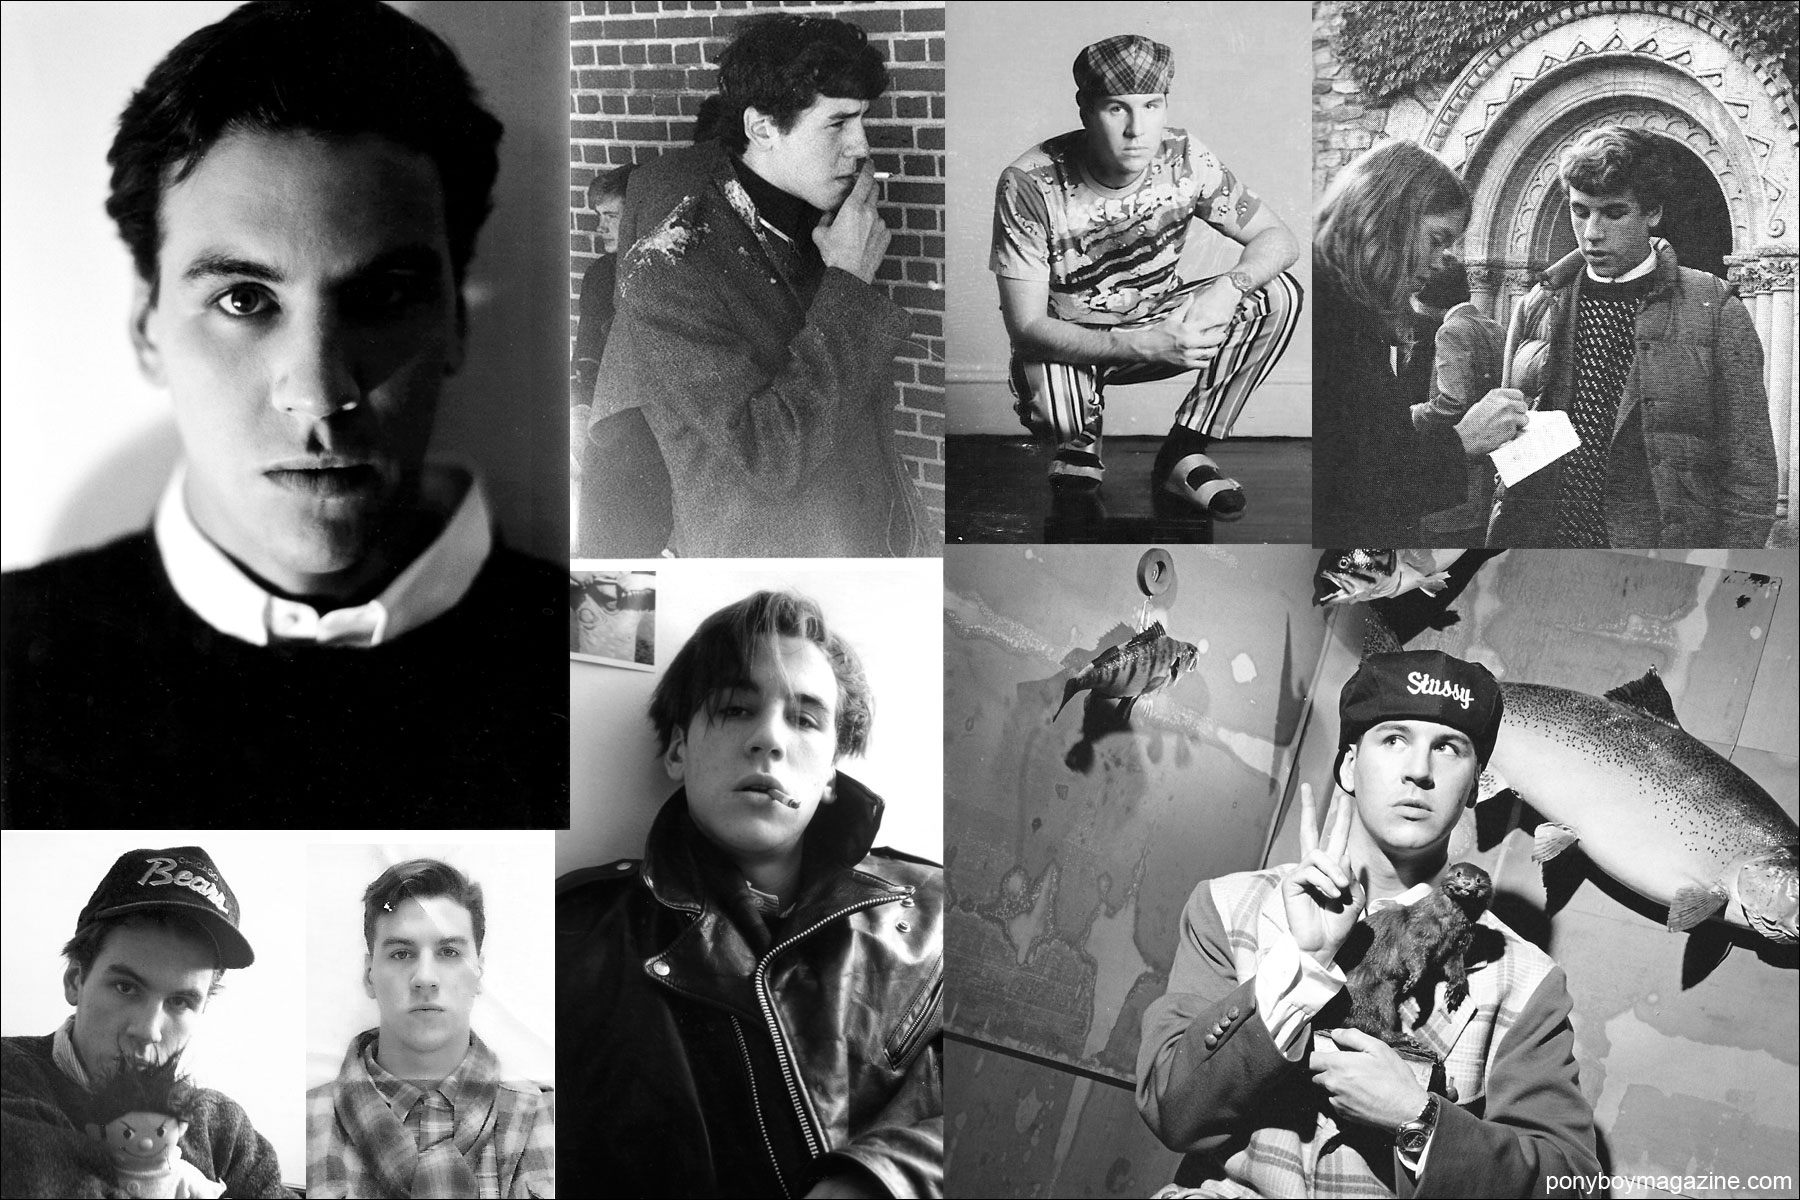 Assorted B&W photos of a young Peter Davis. Ponyboy Magazine.